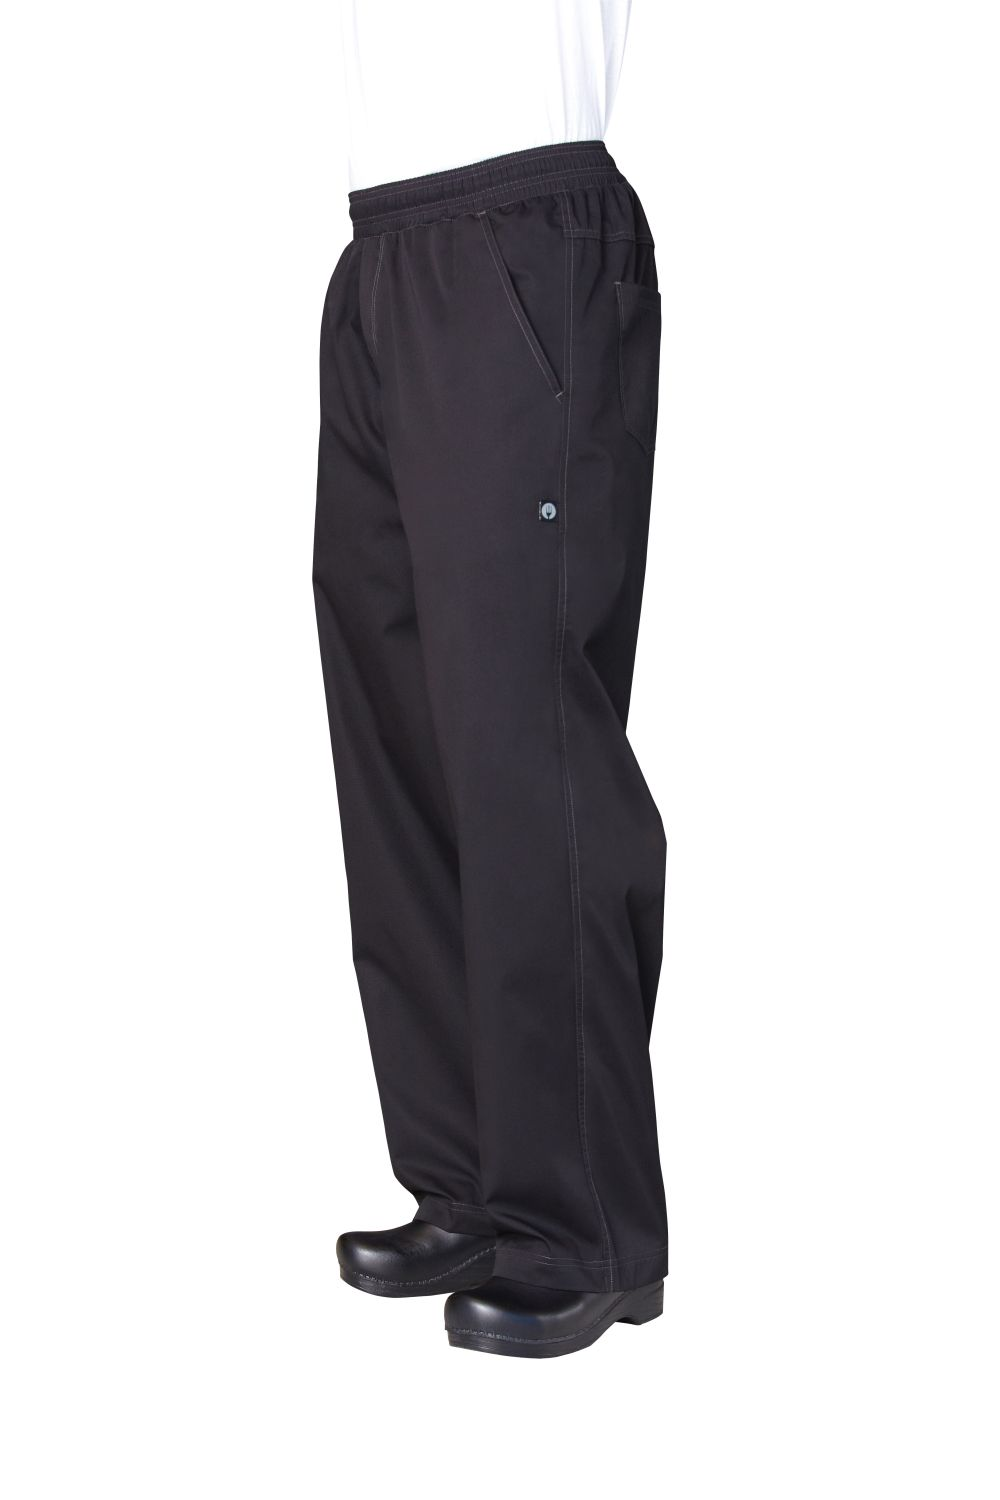 Basic Mens Baggy Lightweight Chef Pants